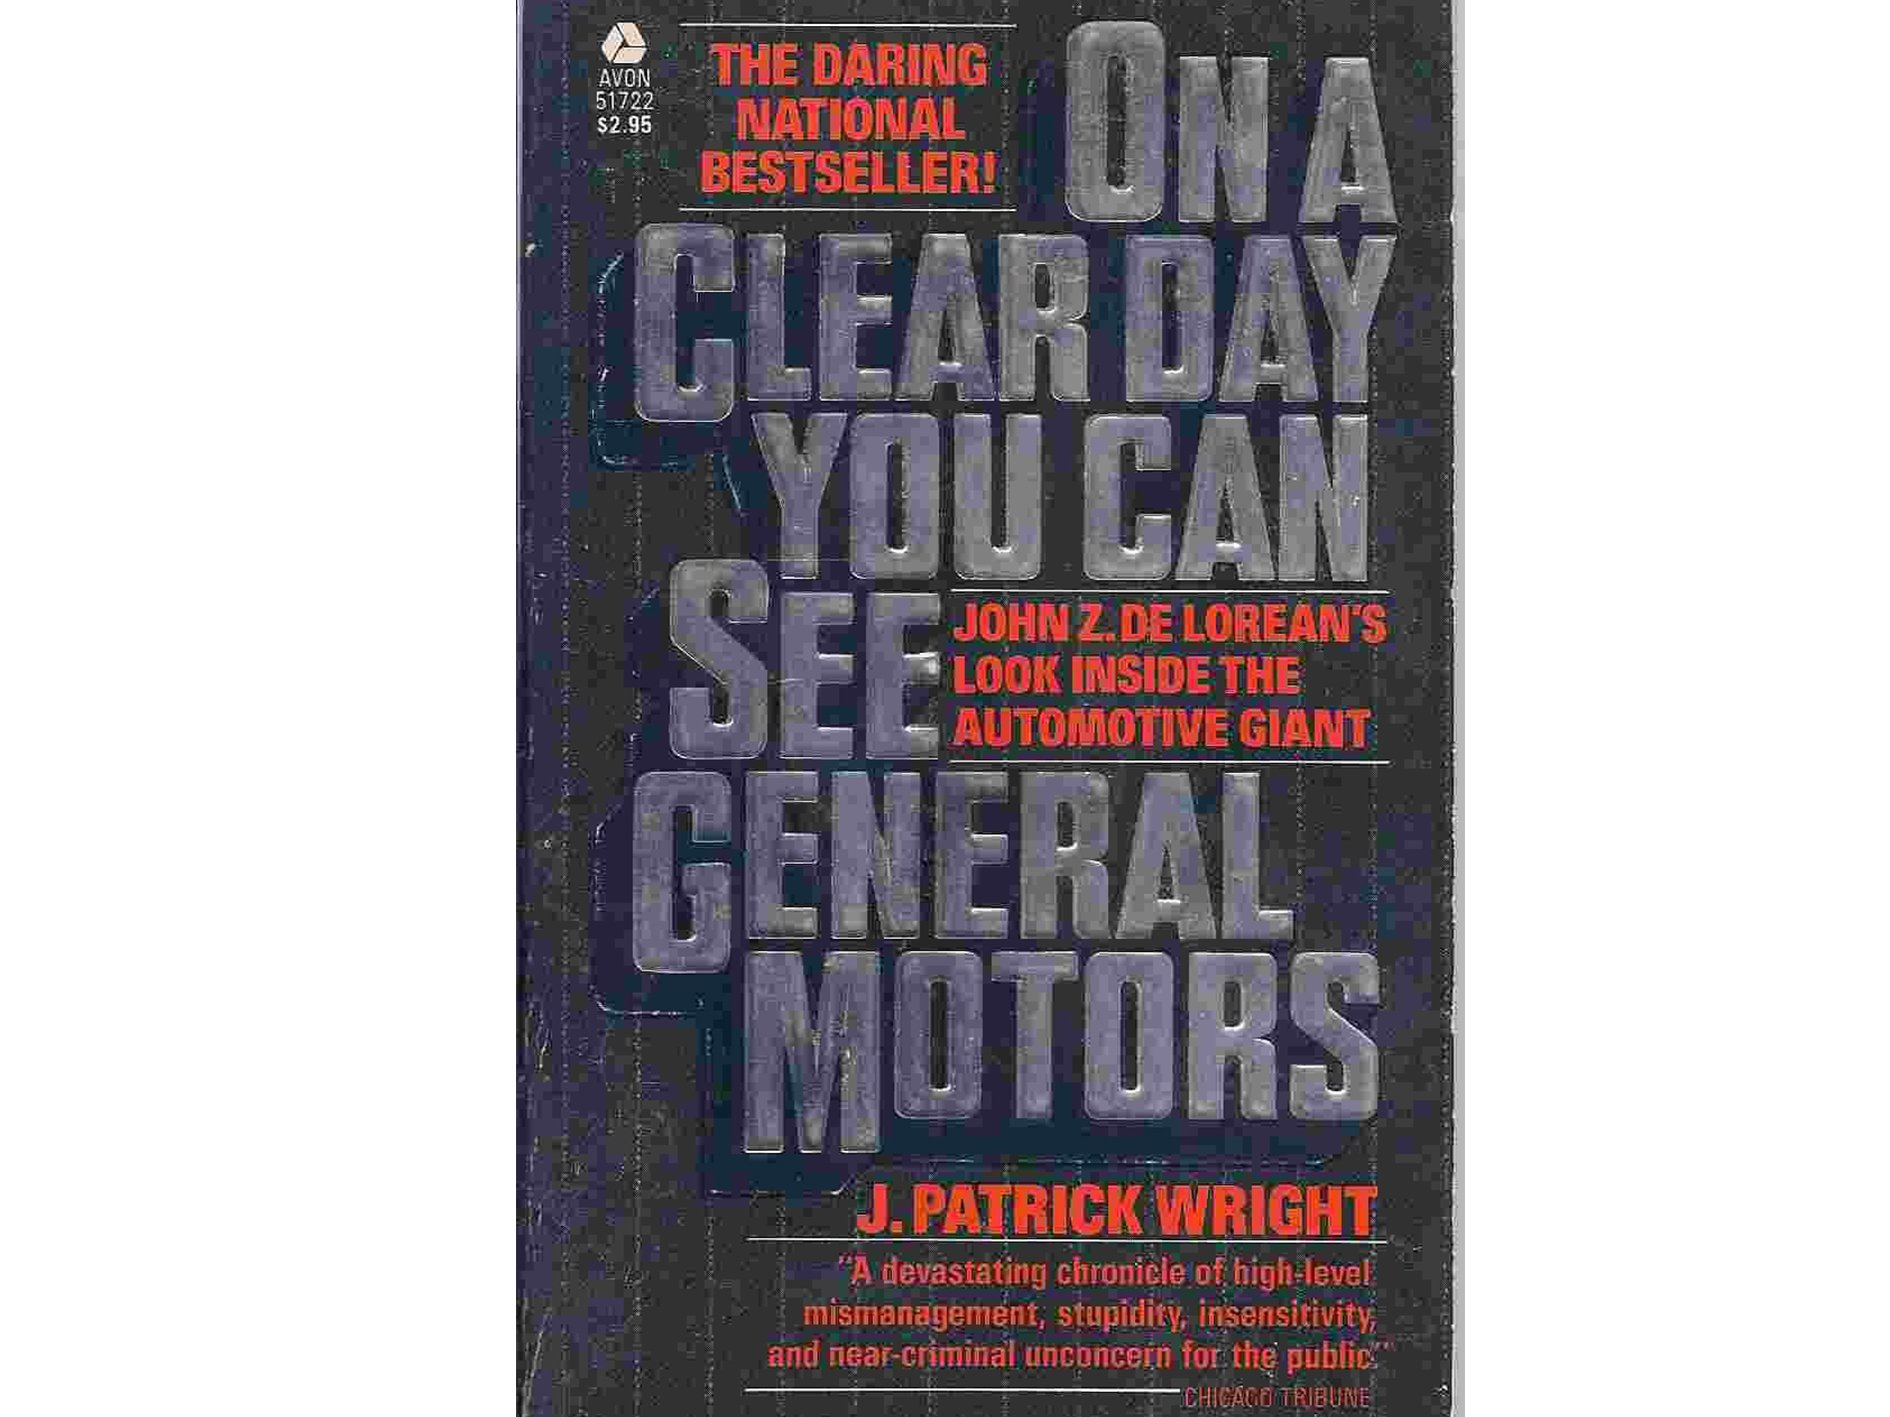 On A Clear Day You Can See General Motors DeLorean: The Strange Story Behind The Iconic 80s Sports Car And Its Creator